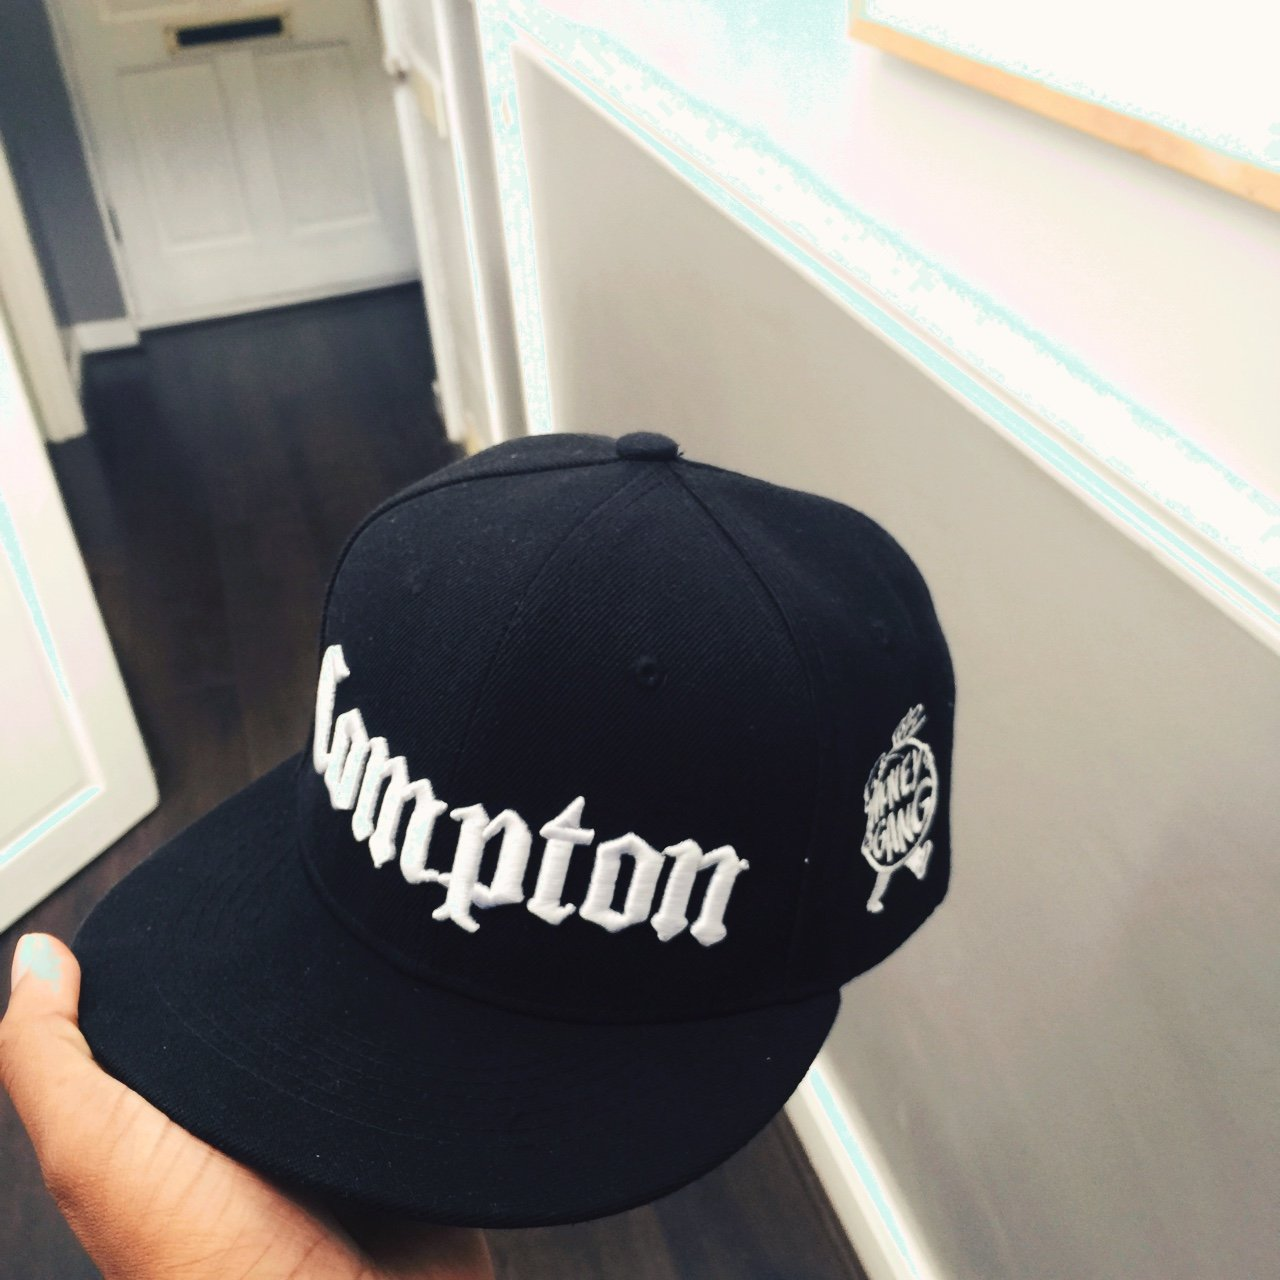 Straight outta Compton x Money Gang SnapBack black - Depop 8aca32703d4